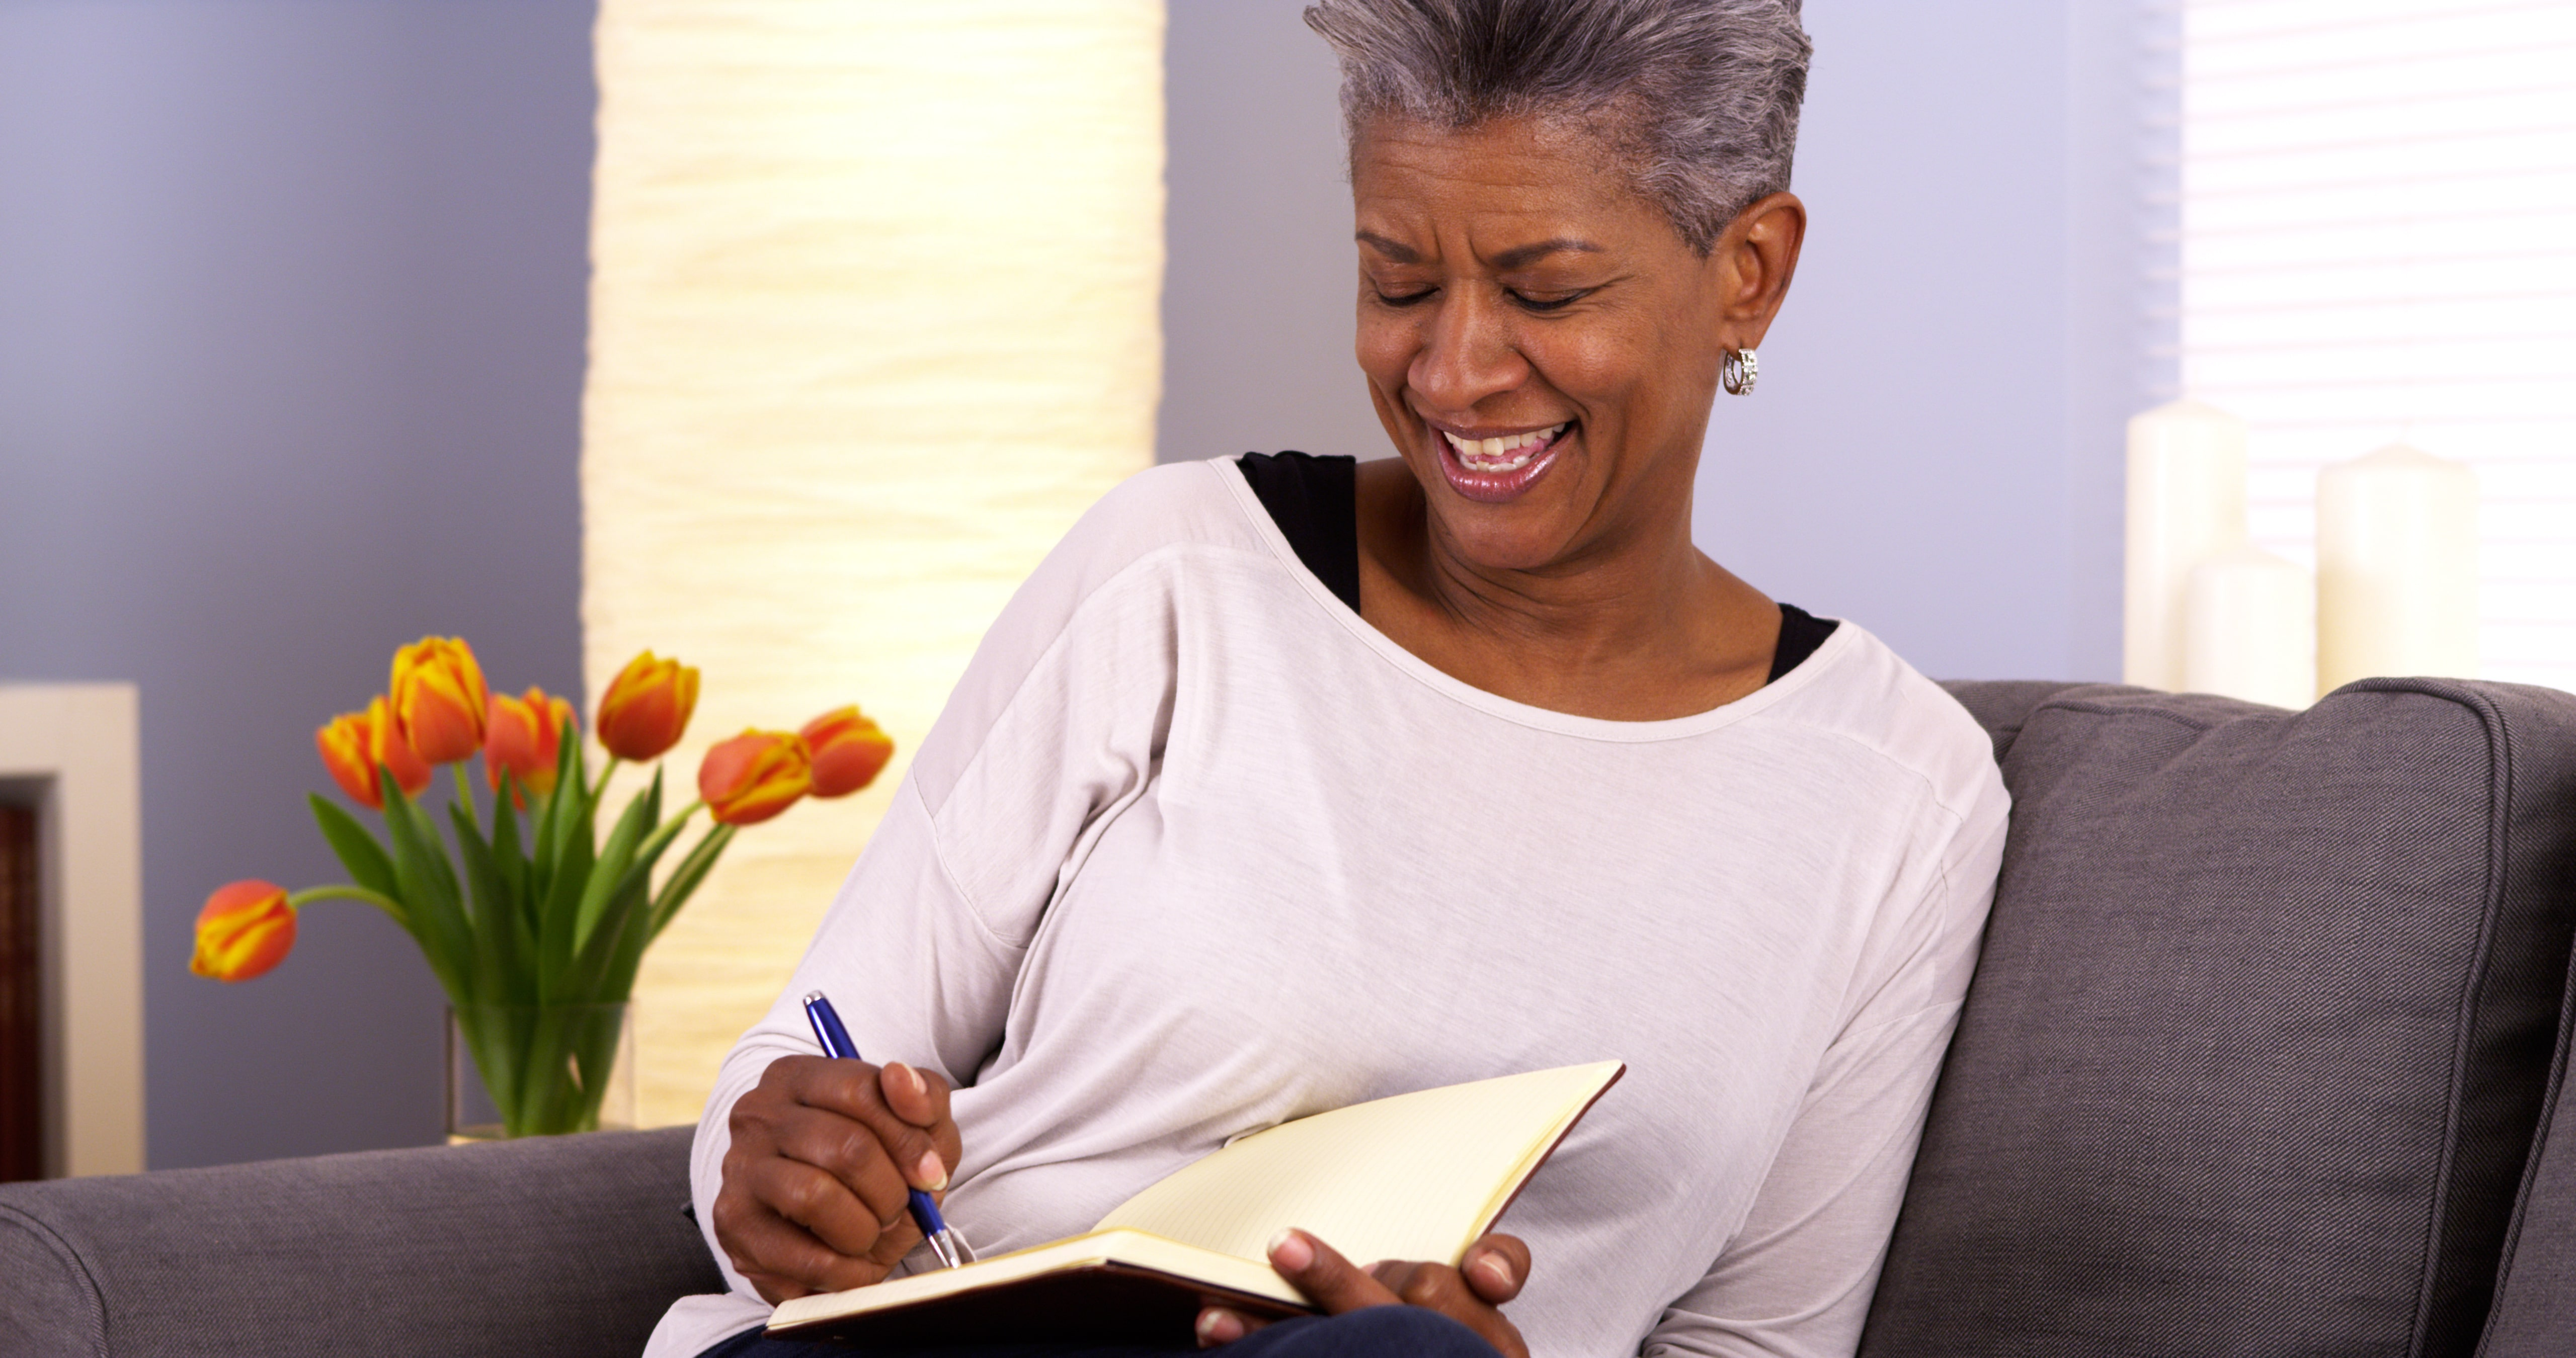 12 Tips for Journaling in Your Assisted Living Apartment